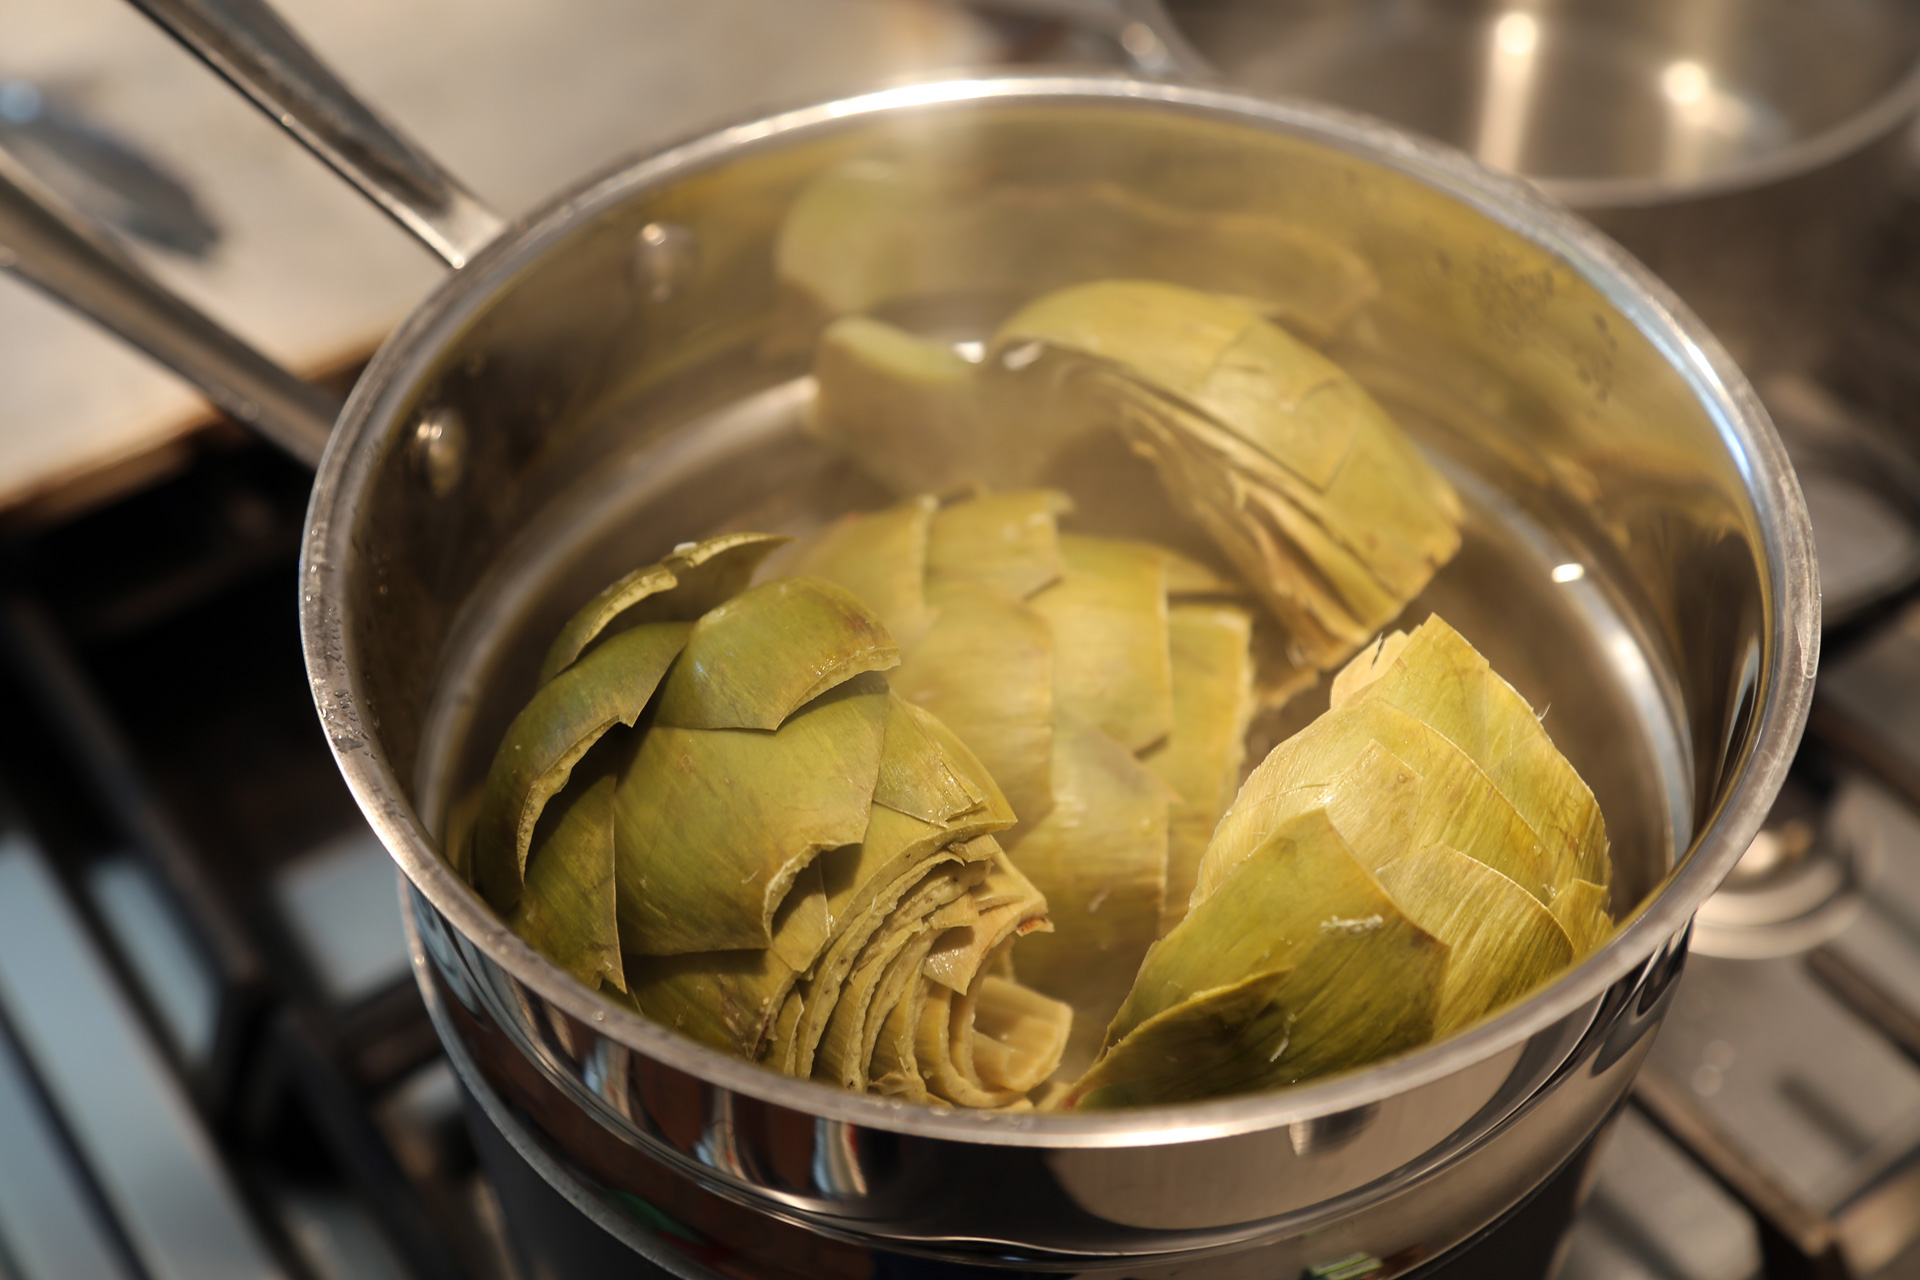 Cover and steam until the heart of the artichoke and the stem is tender when pierced with a paring knife, about 20 minutes.